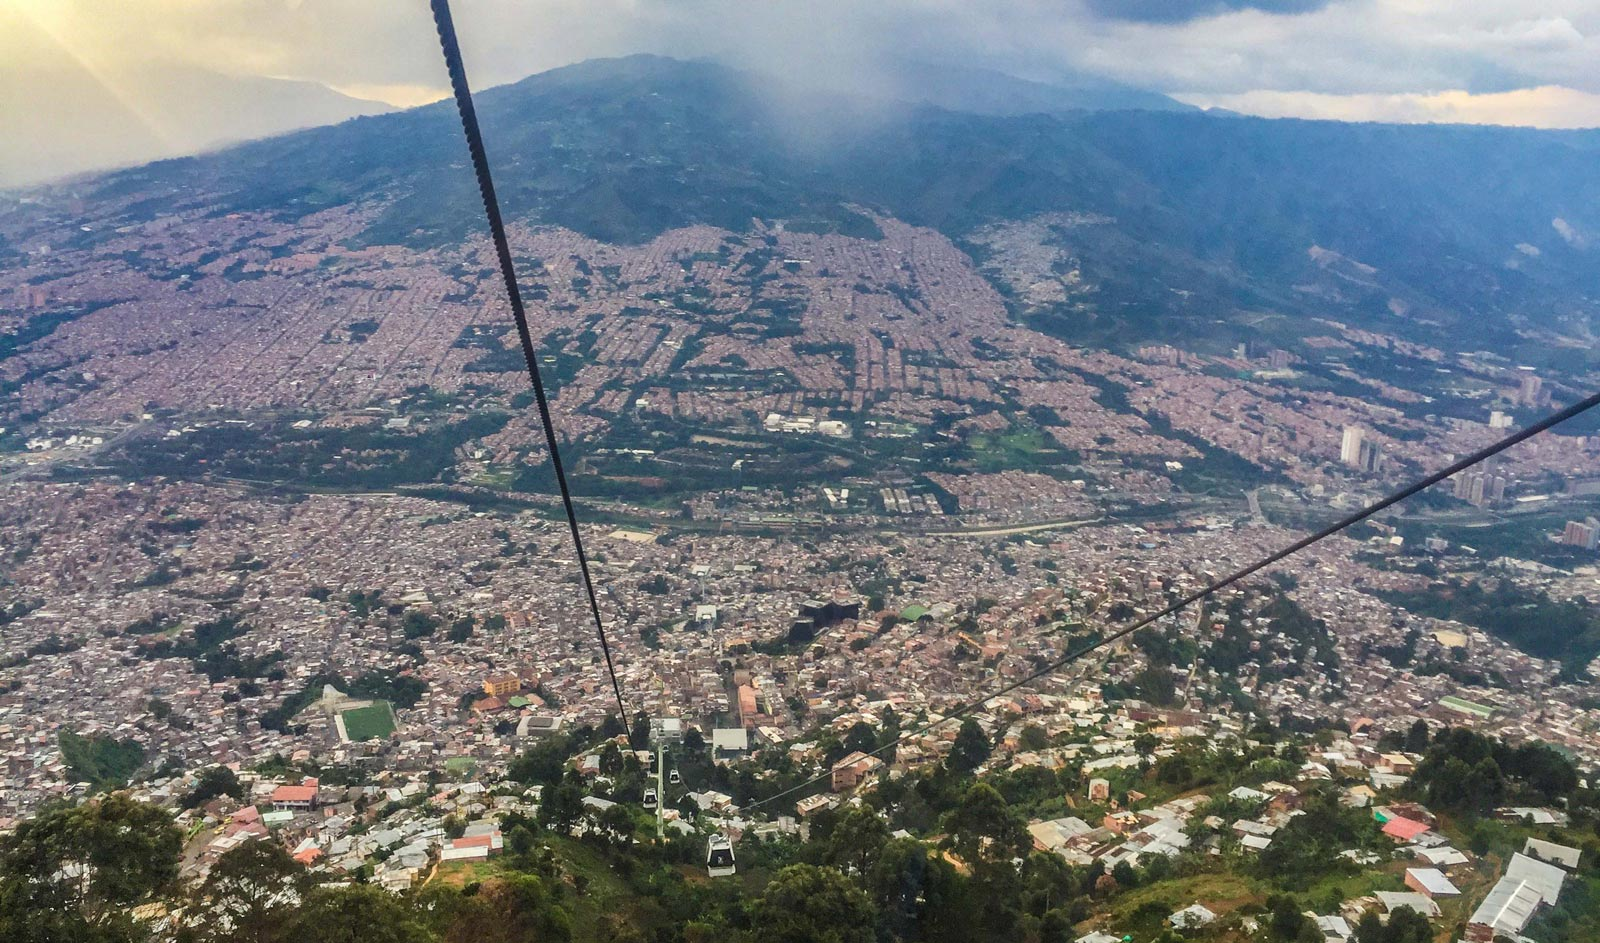 Why I'd live in Medellin after travelling it